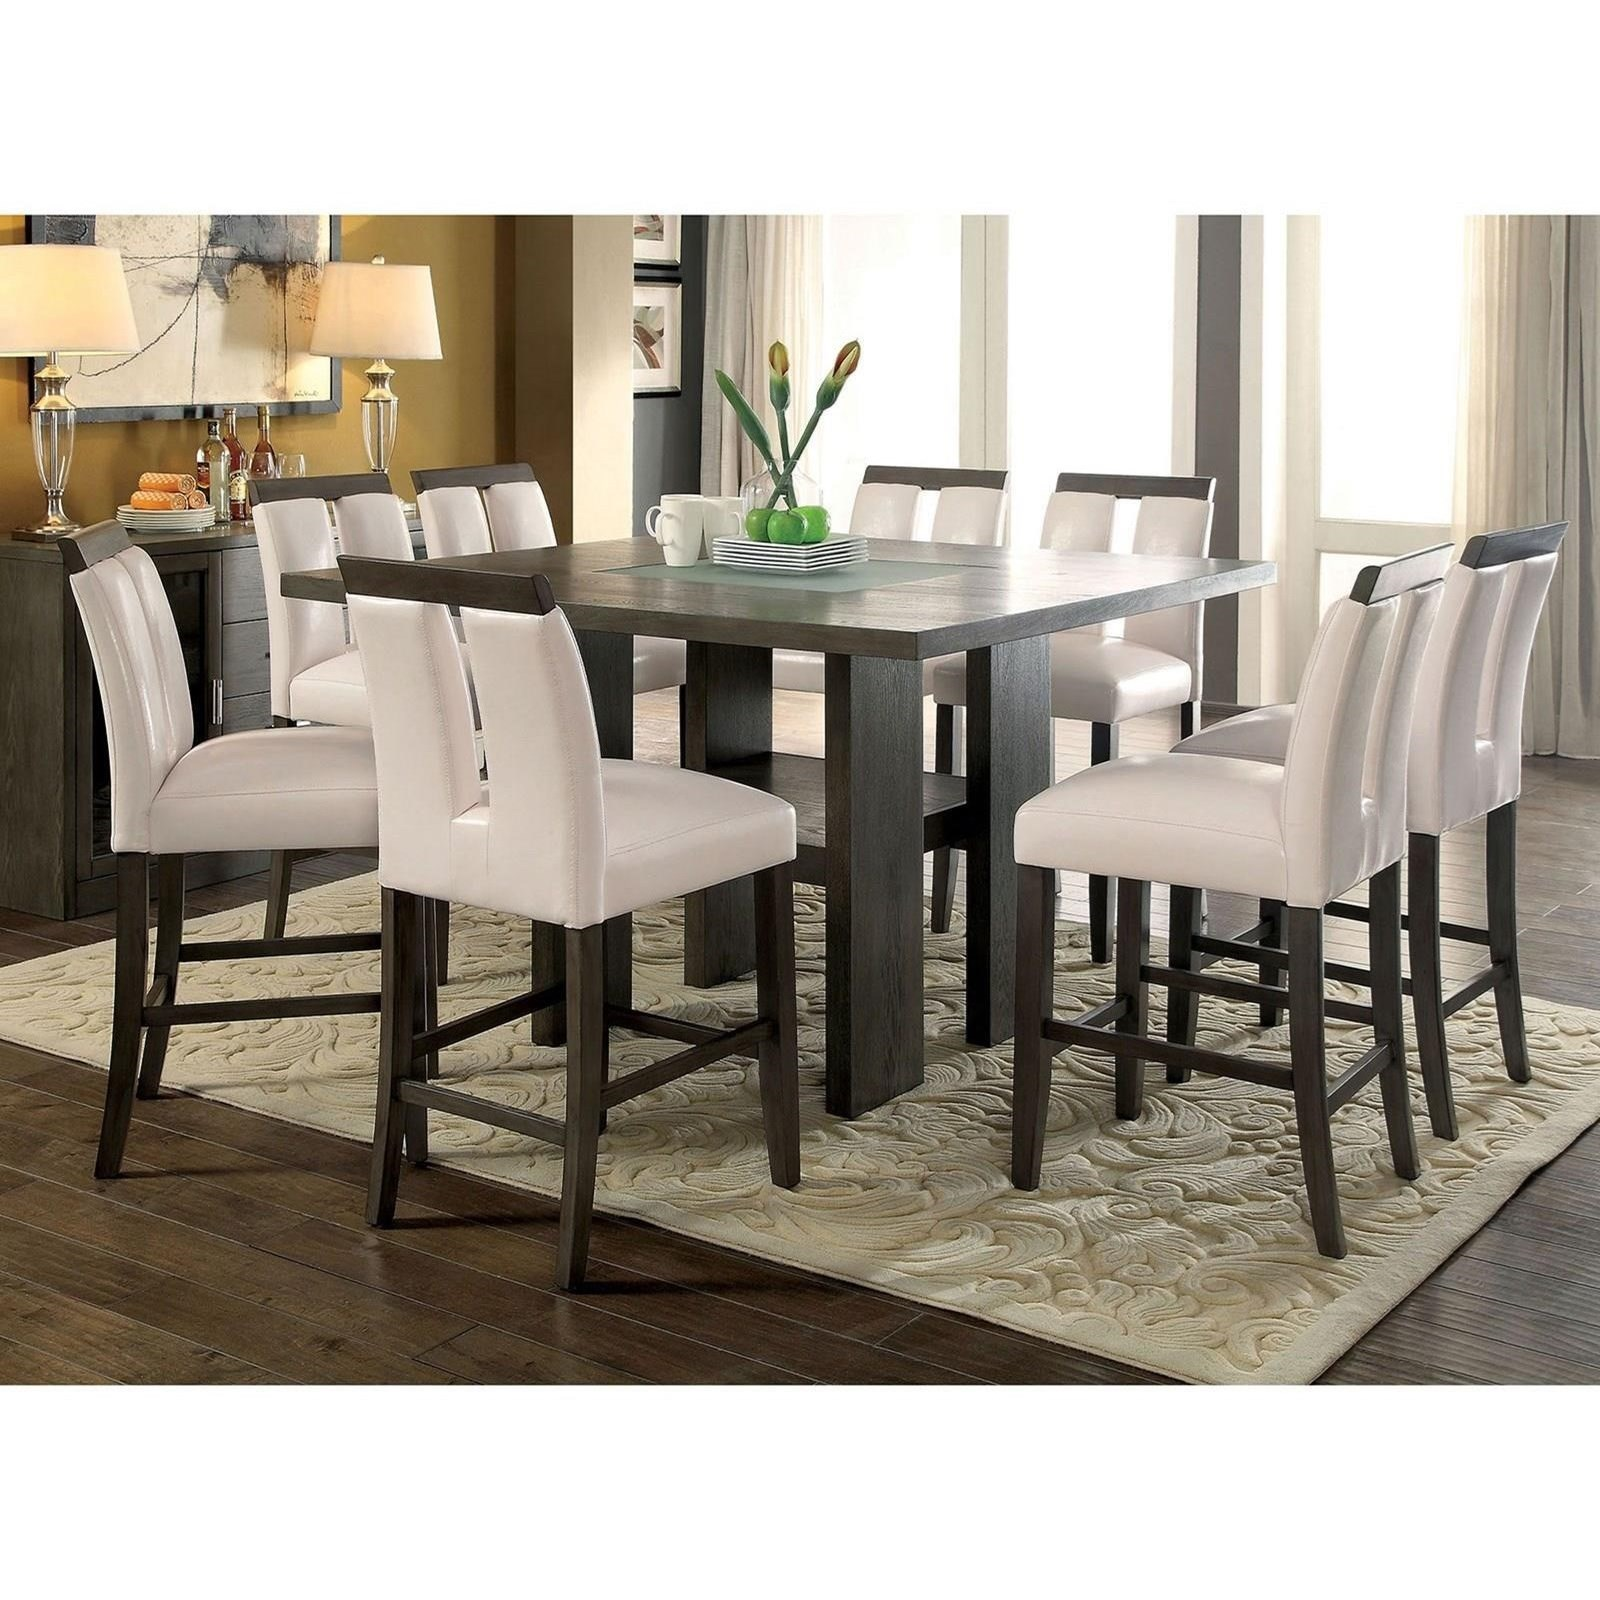 Luminar Counter Height Table Set by Furniture of America at Nassau Furniture and Mattress